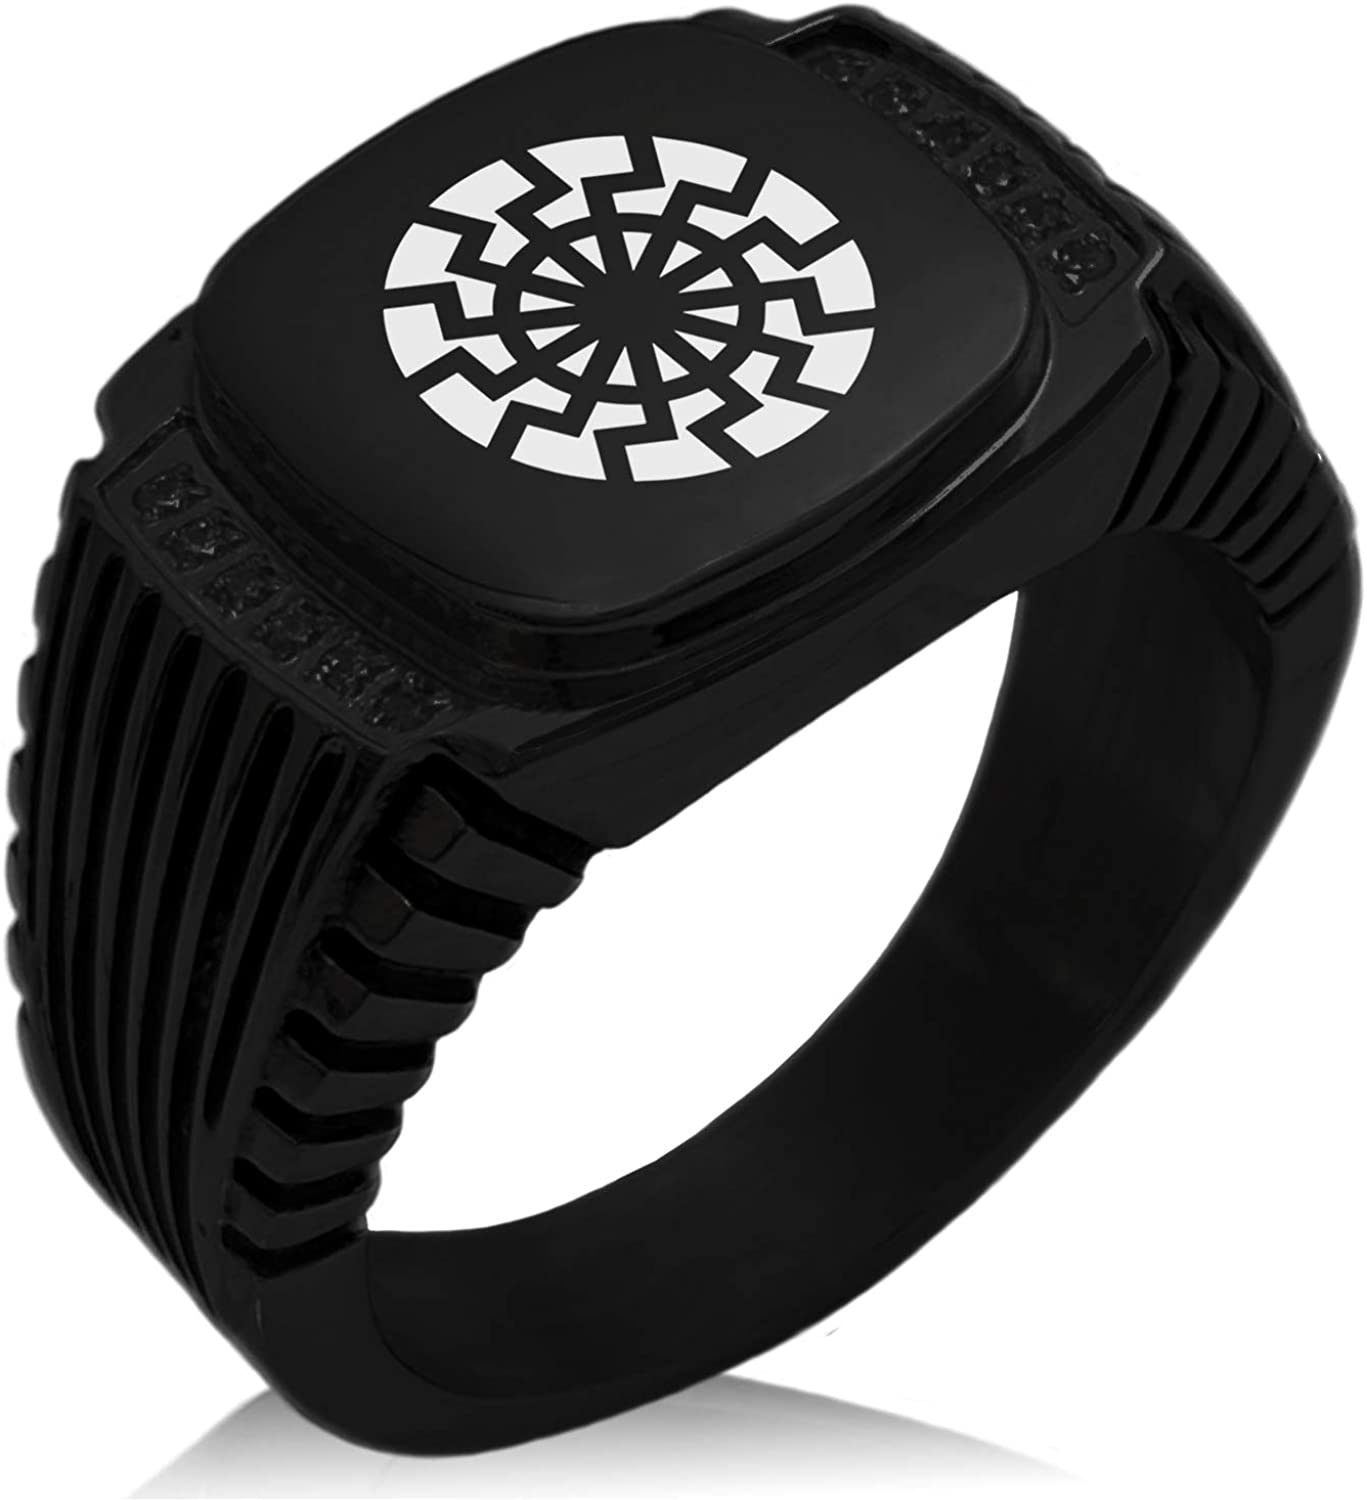 Tioneer Stainless Steel Necromancer Emblem CZ Ribbed Needle Stripe Pattern Biker Style Polished Ring